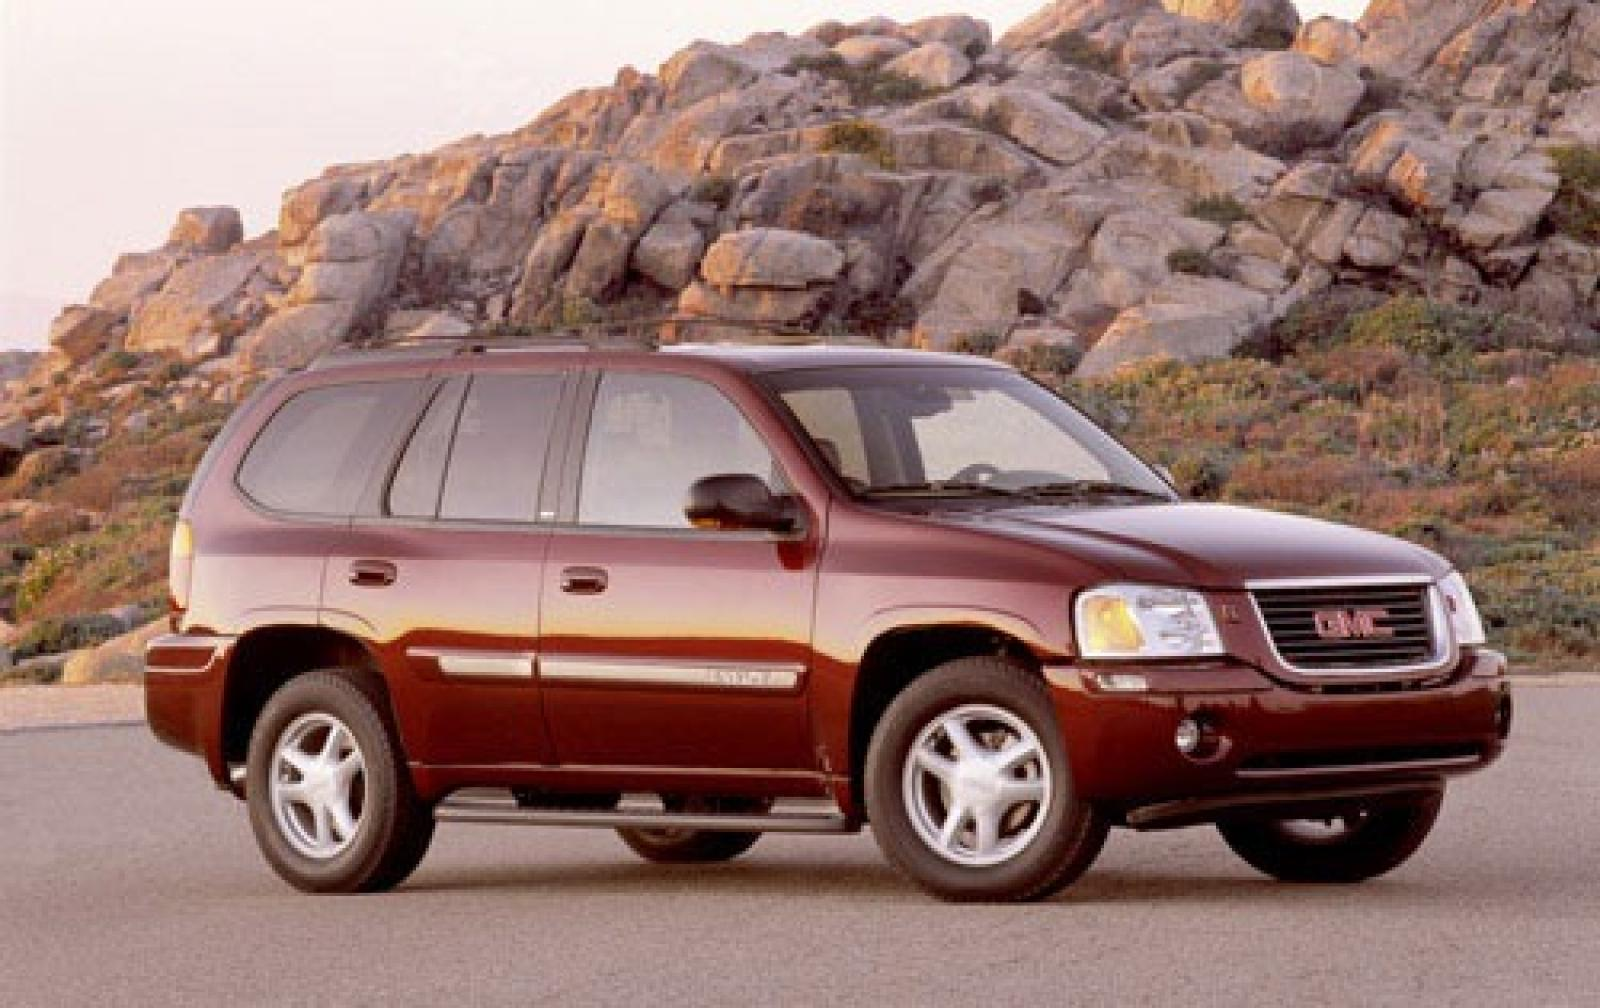 2005 gmc envoy information and photos zombiedrive rh zombdrive com 2002 GMC Envoy SLT 2006 GMC Envoy